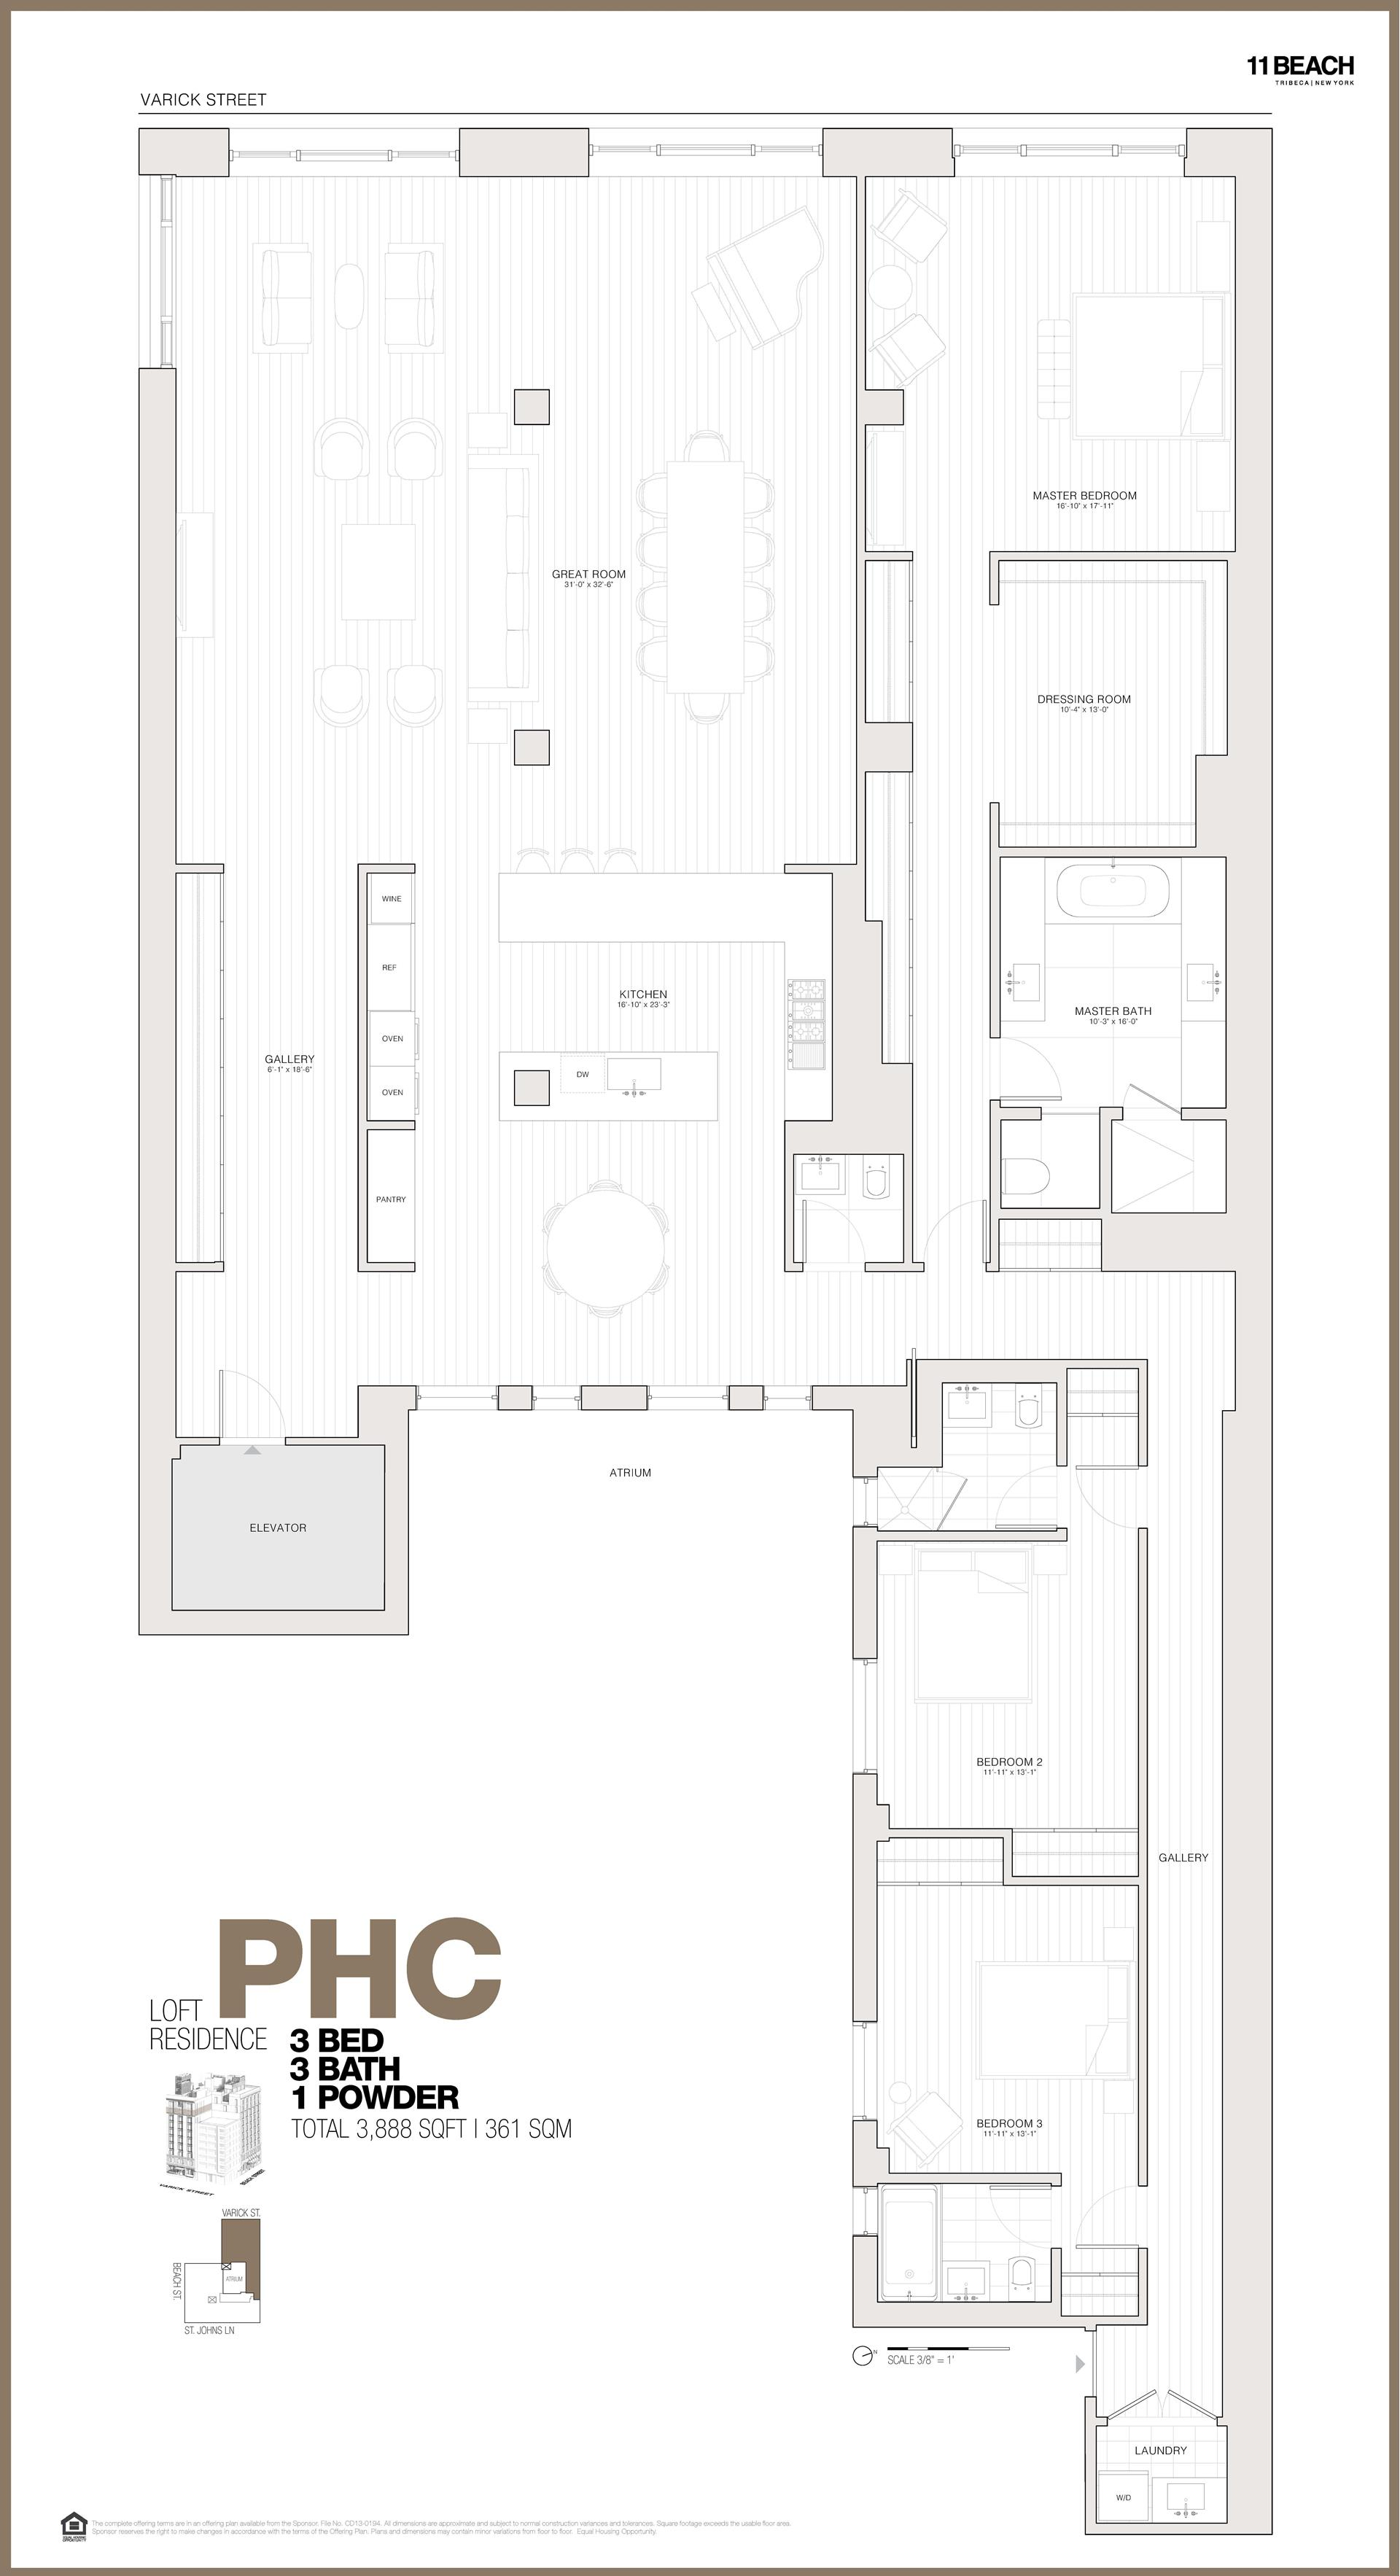 Floor plan of 11 Beach St, PHC - TriBeCa, New York